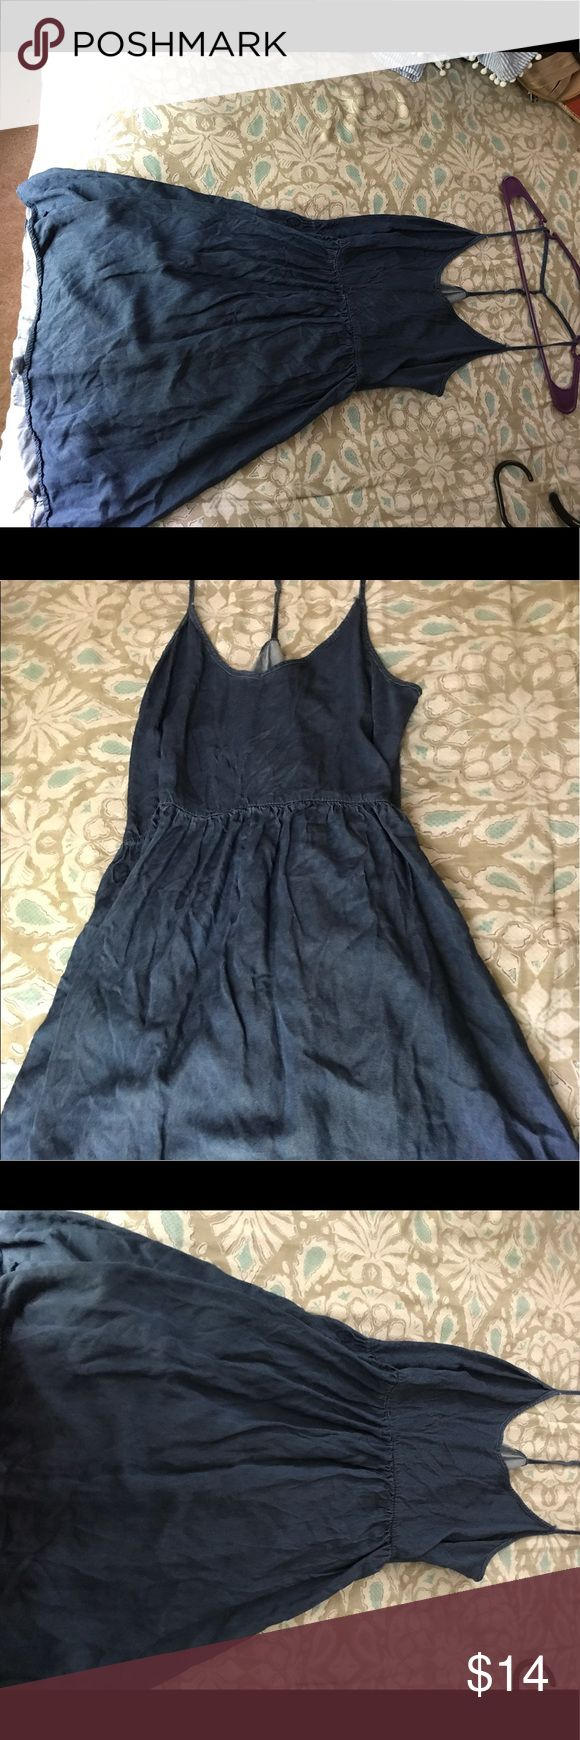 Denim Skater Dress A light and casual denim dress that works perfectly for a daytime event . Dresses Mini